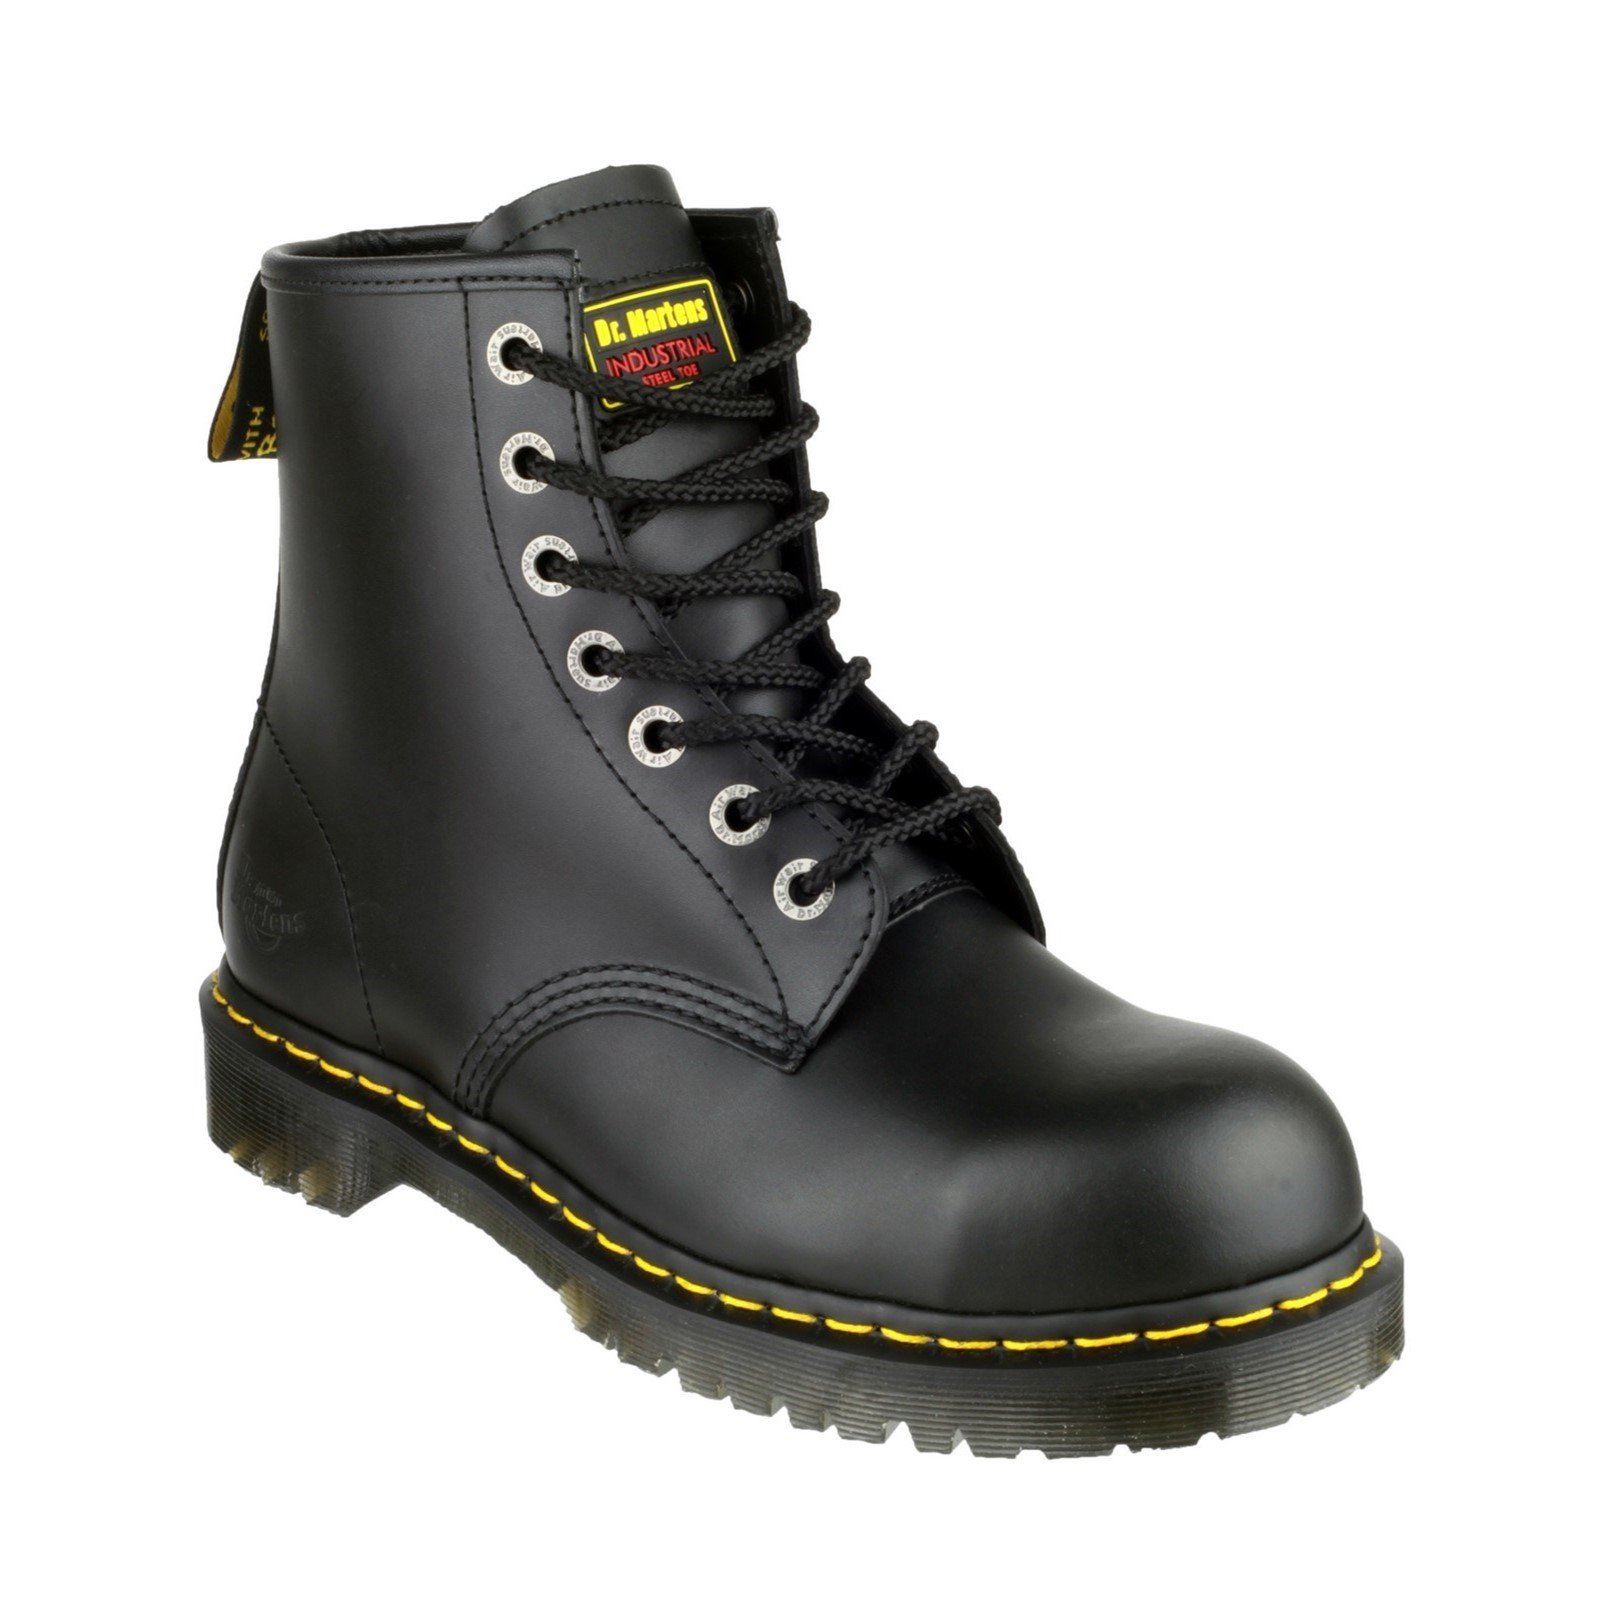 Dr Martens Unisex Icon Lace up Safety Boot Black 19498 - Black 8